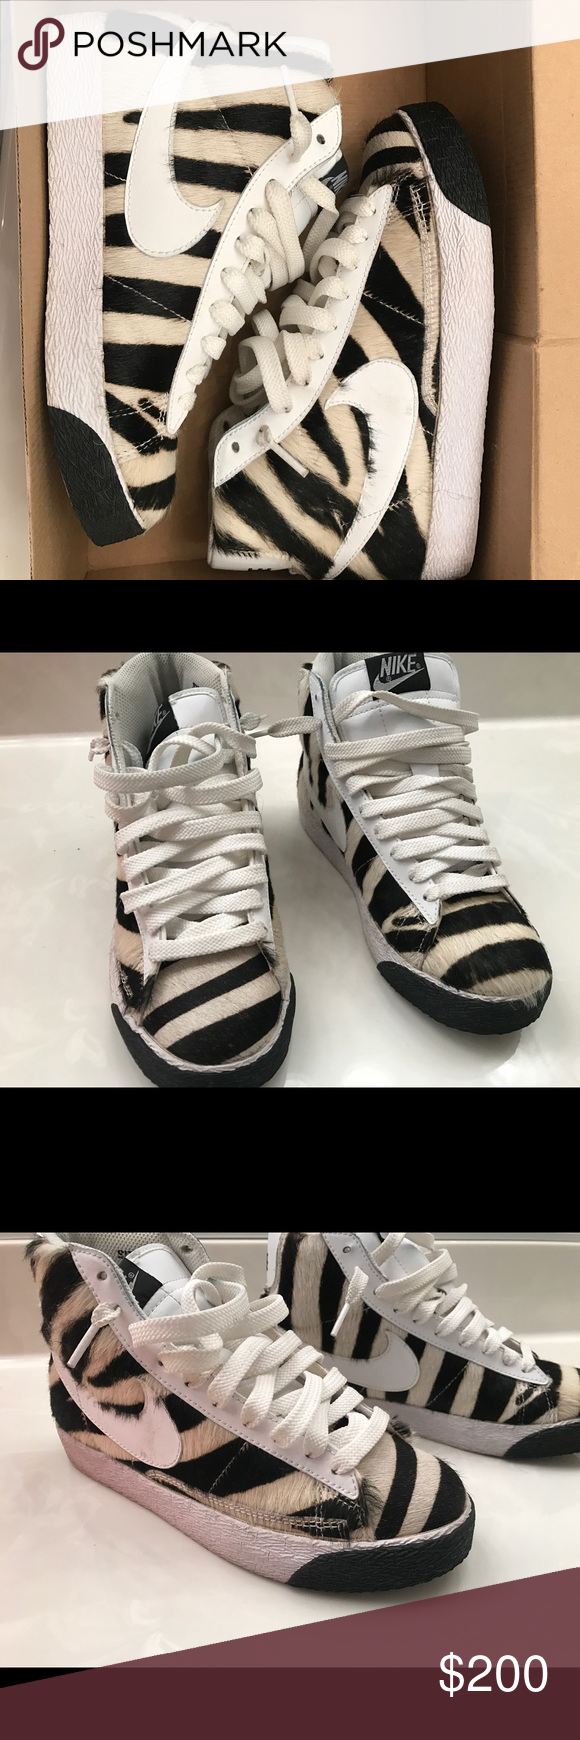 the latest d7f31 73a23 ... closeout limited edition pony hair zebra blazers limited edition. these nike  blazers come with pony